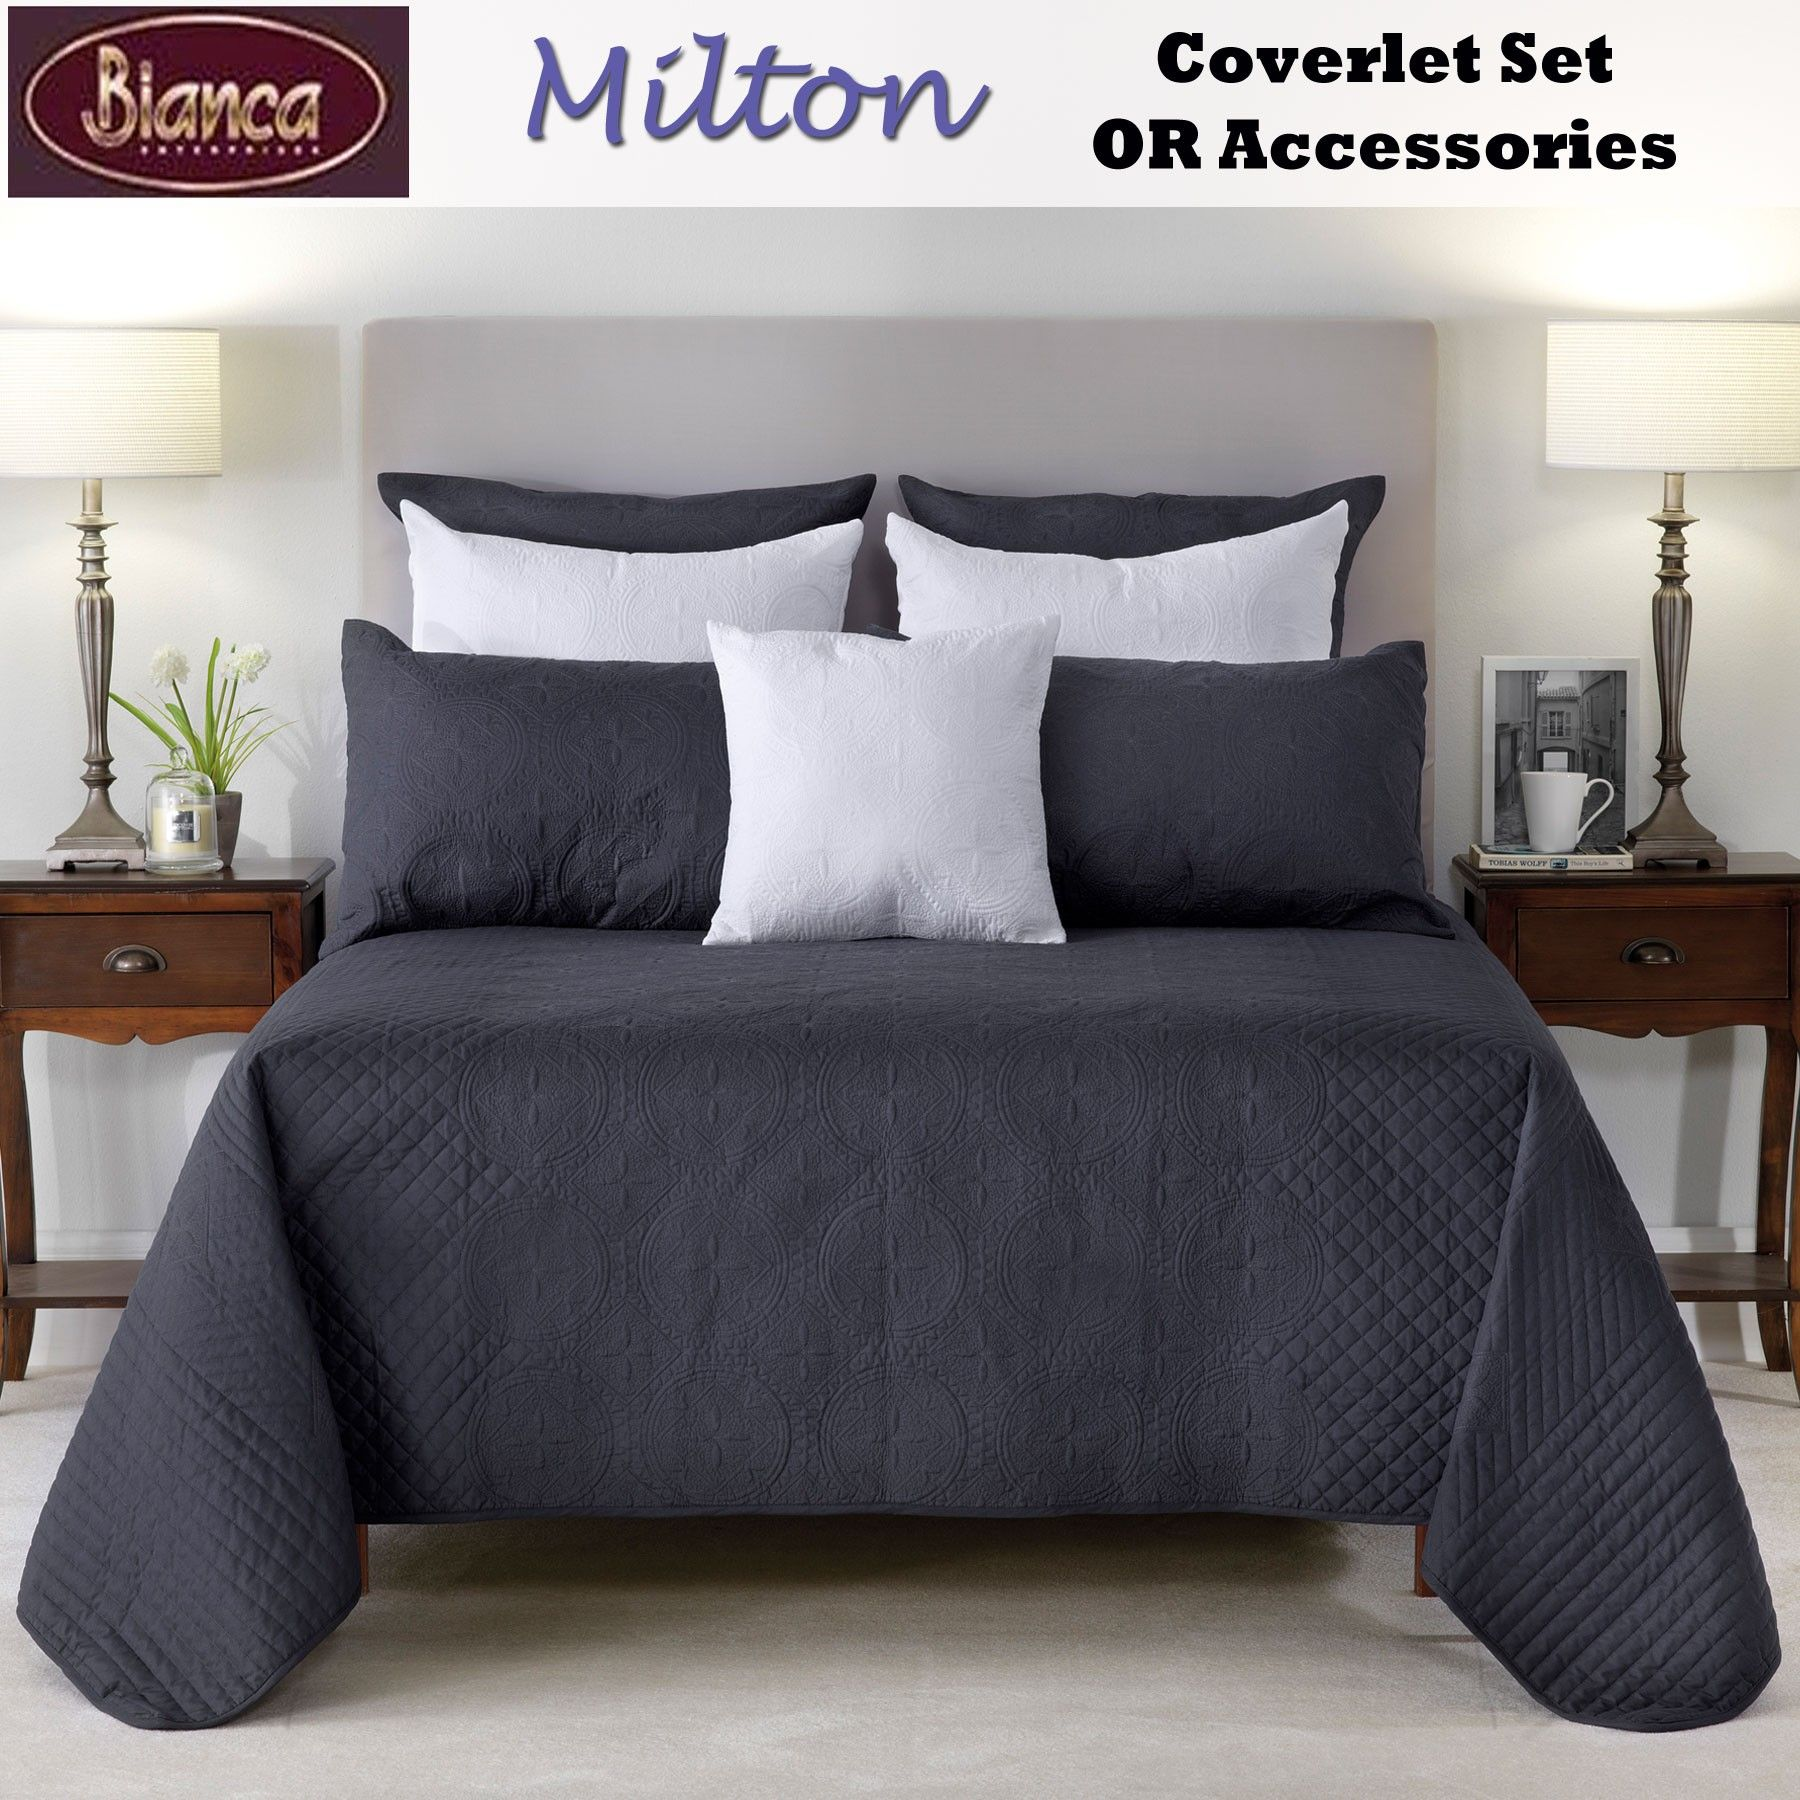 Milton Coverlet Set By Bianca Easily Makeover Your Bedroom Into Luxurious  And Comfortable Place With This Stunning Milton Embroidered Coverlet Set  Featuring ...